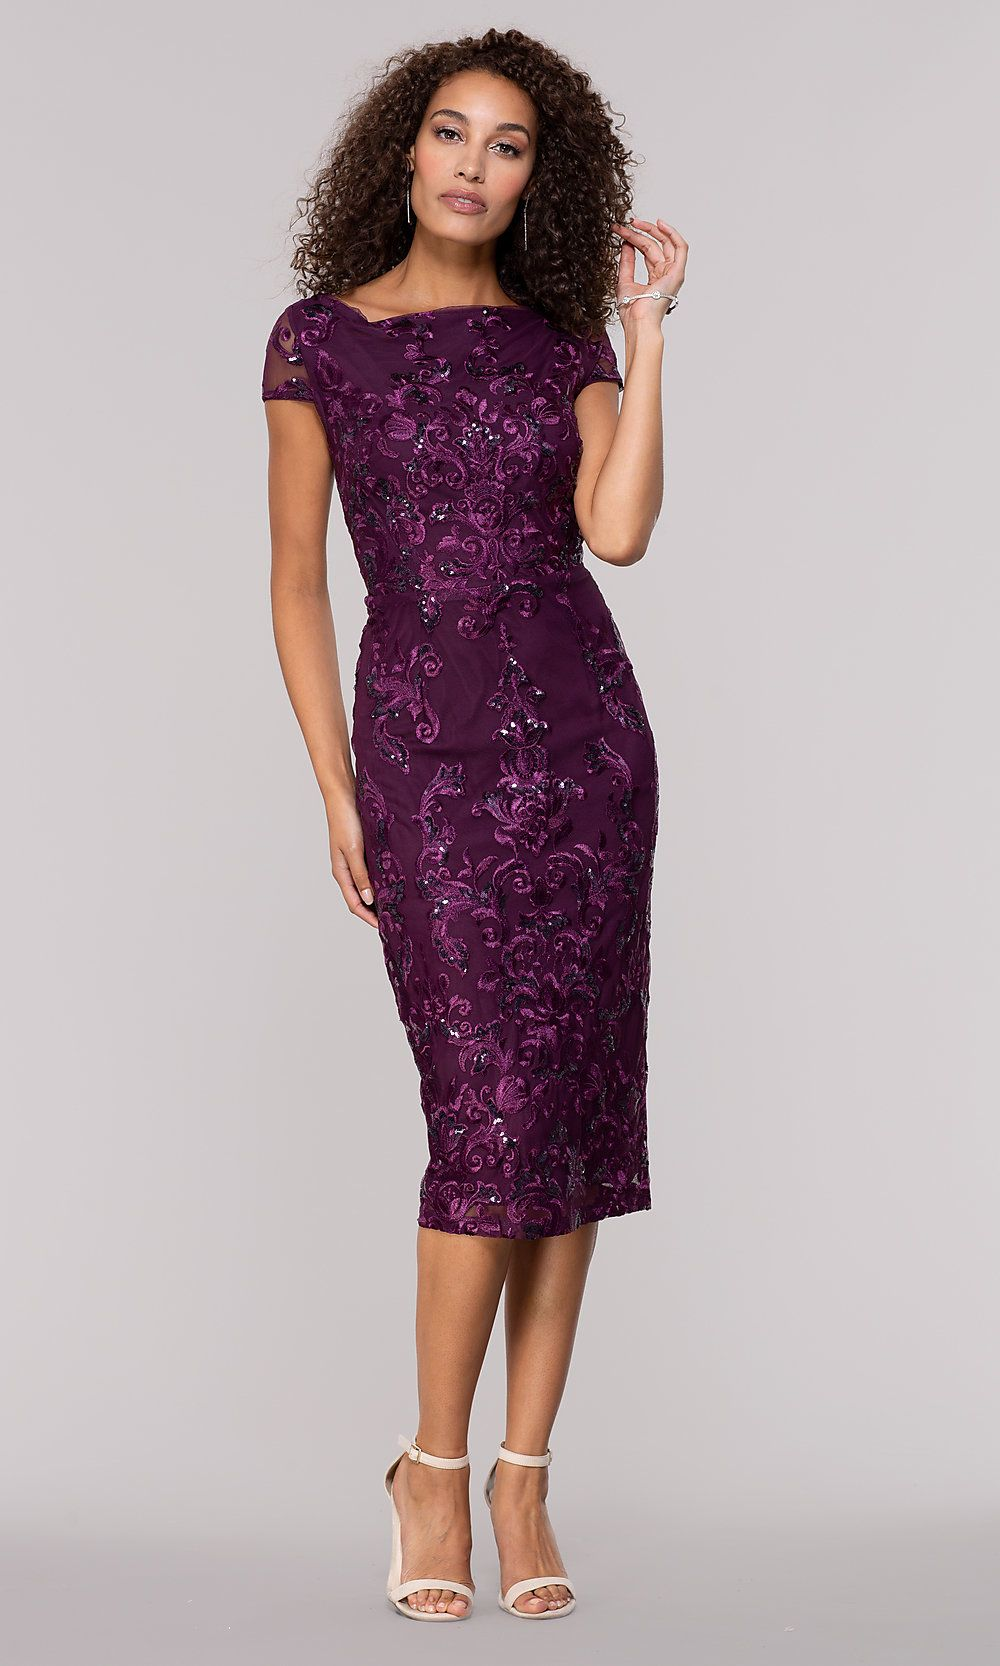 b3cc9435117 Knee-Length Wedding-Guest Dress in Eggplant Purple in 2019